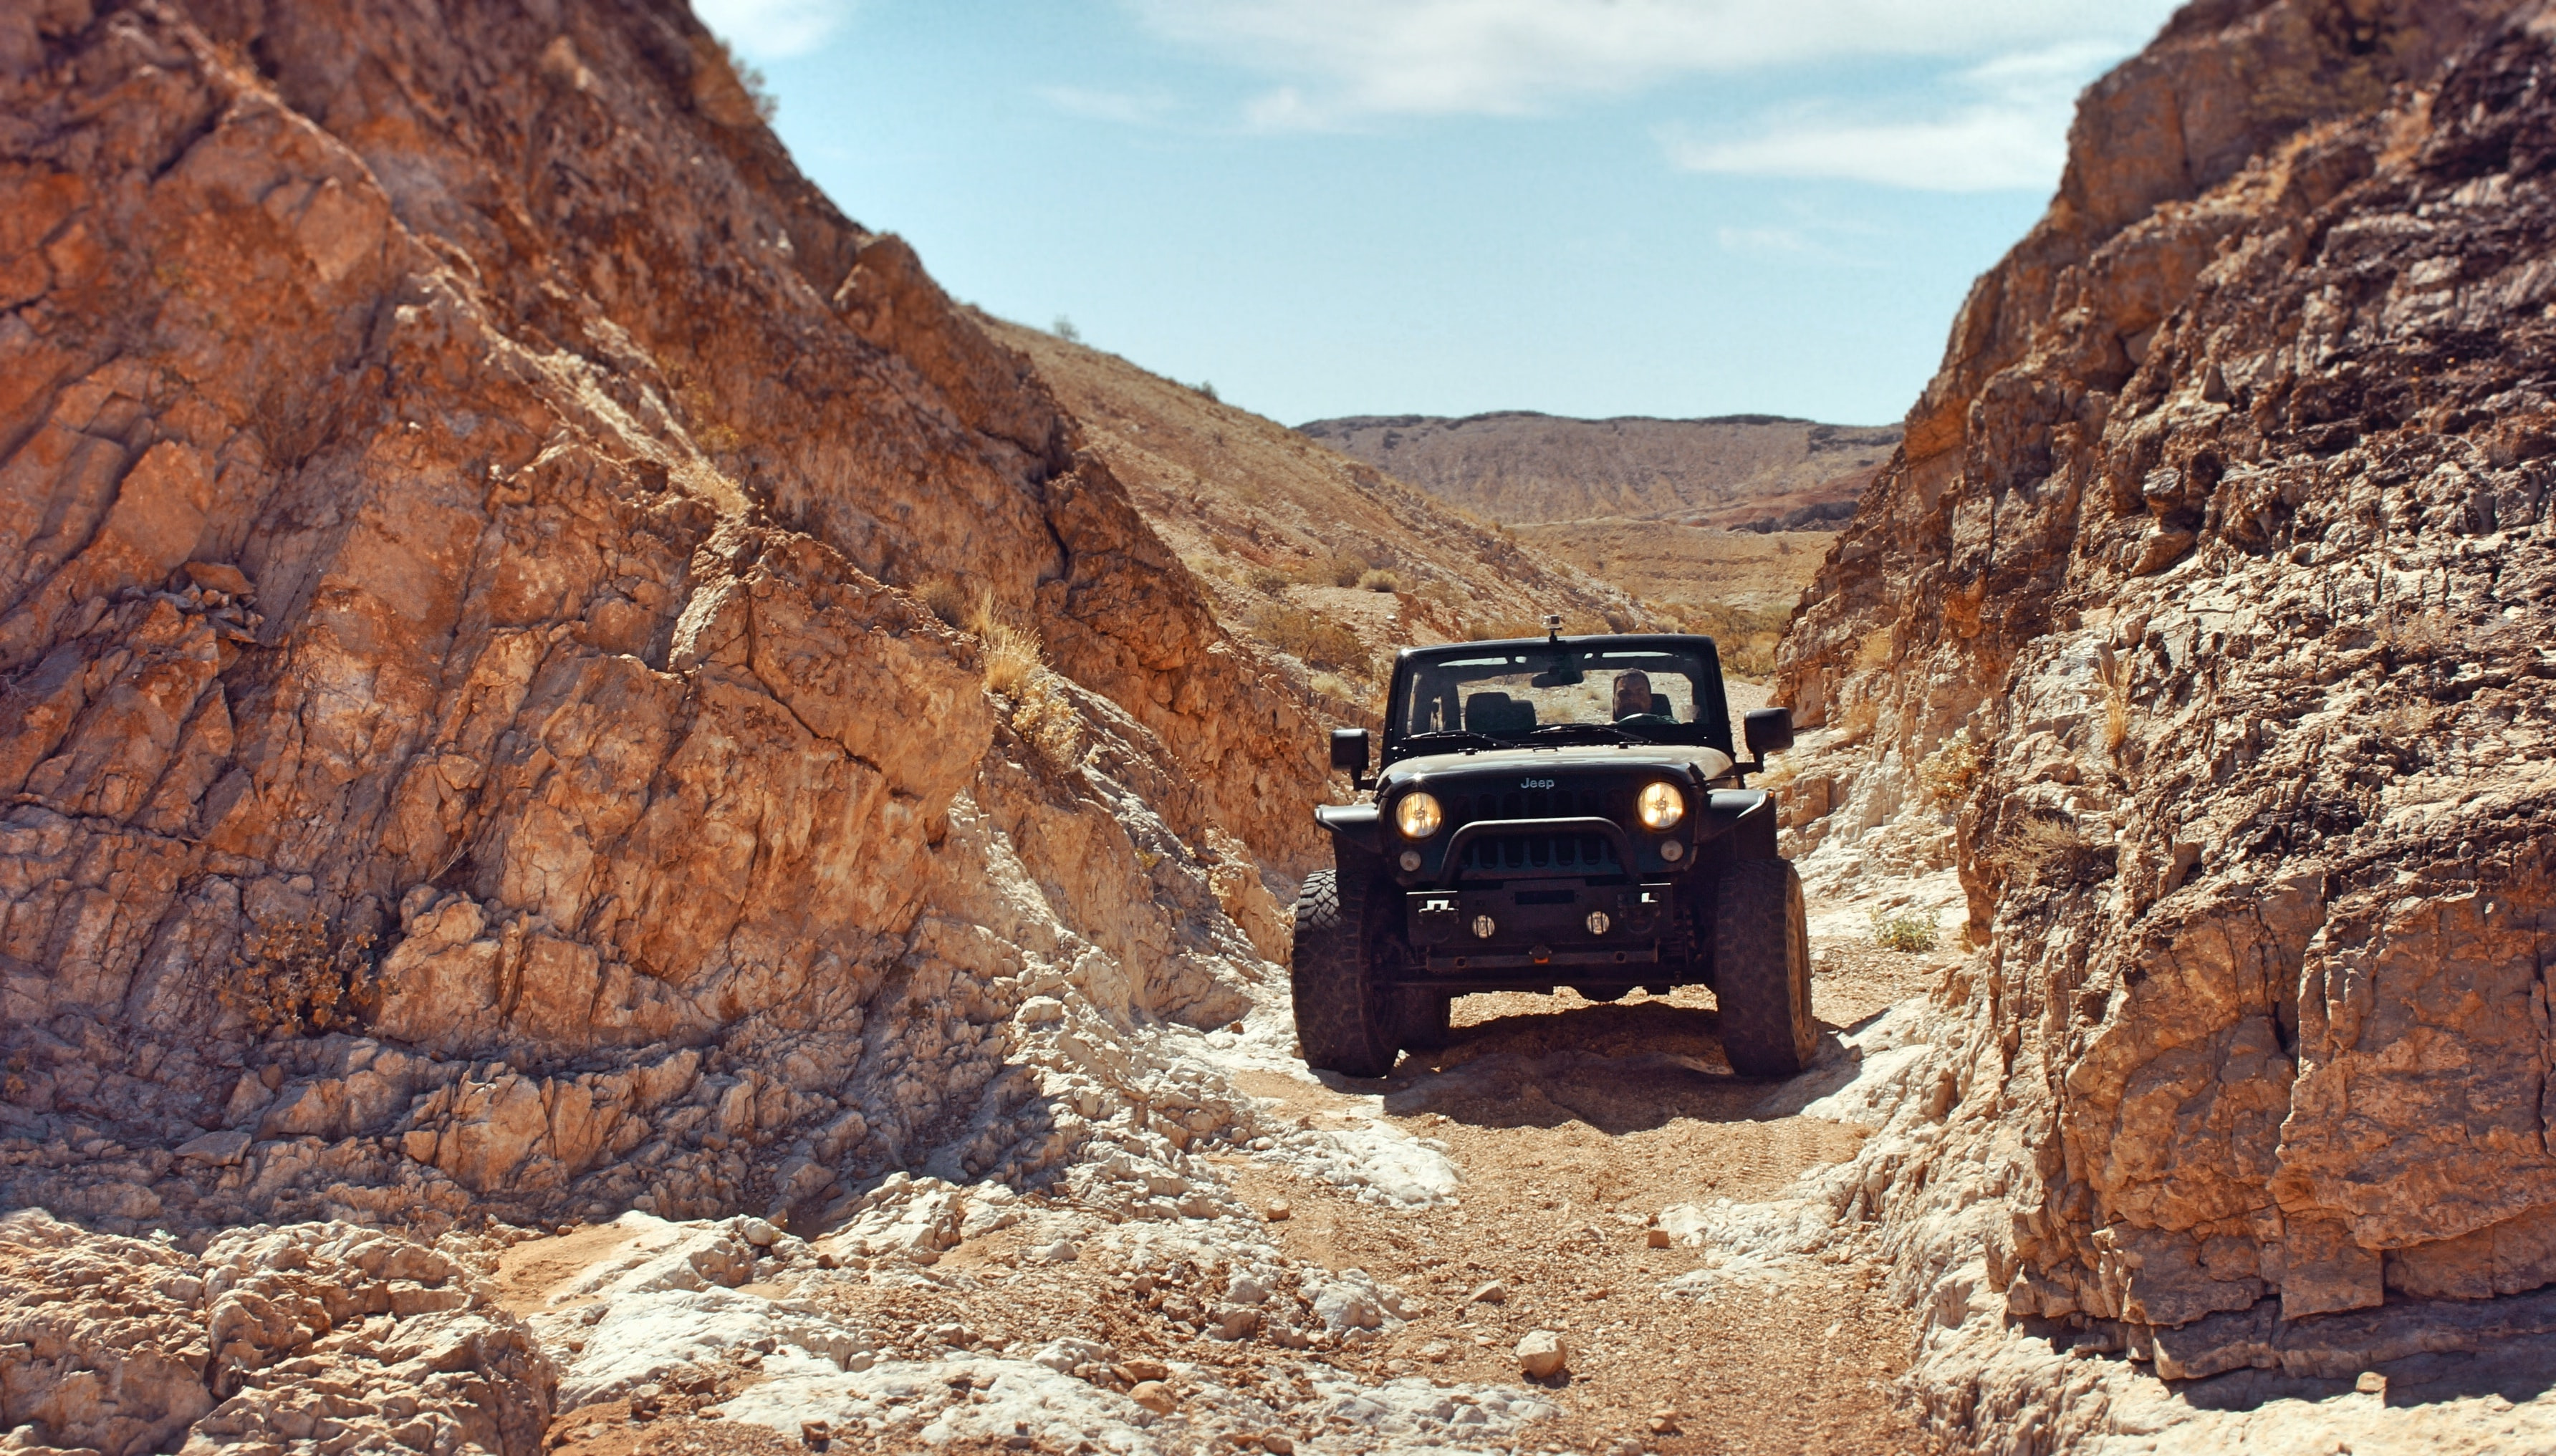 Jeep truck drives through rough terrains in a desert canyon in Nevada